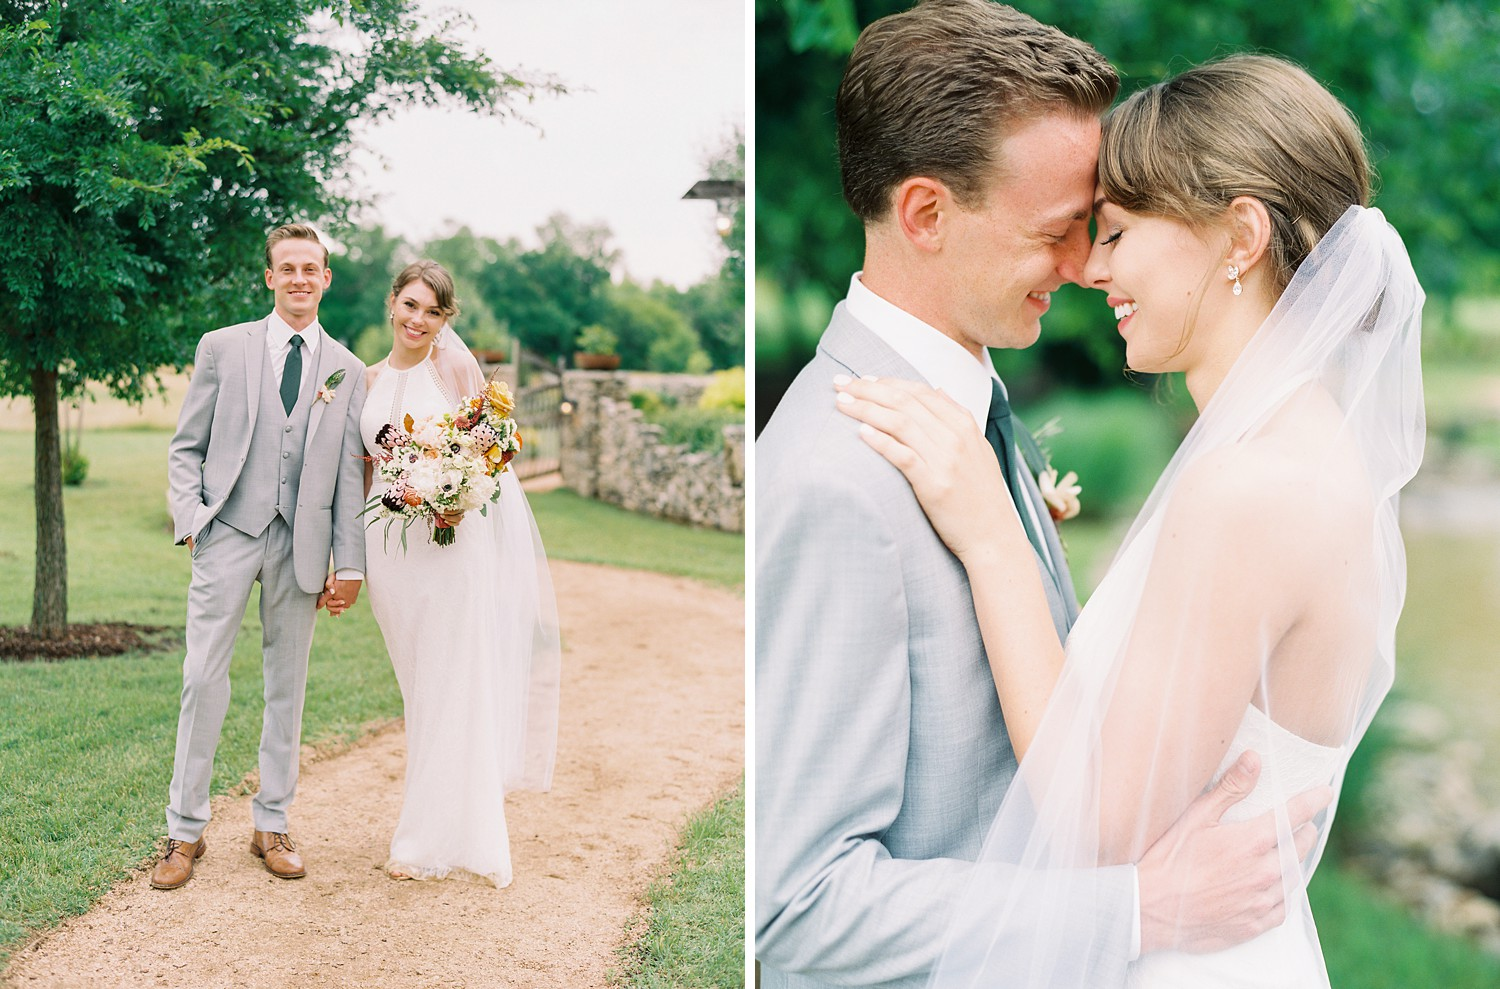 Bride & Groom Photo Inspiration | Romantic Summer Wedding Inspiration | Fort Worth Wedding Photographer | The Brooks at Weatherford